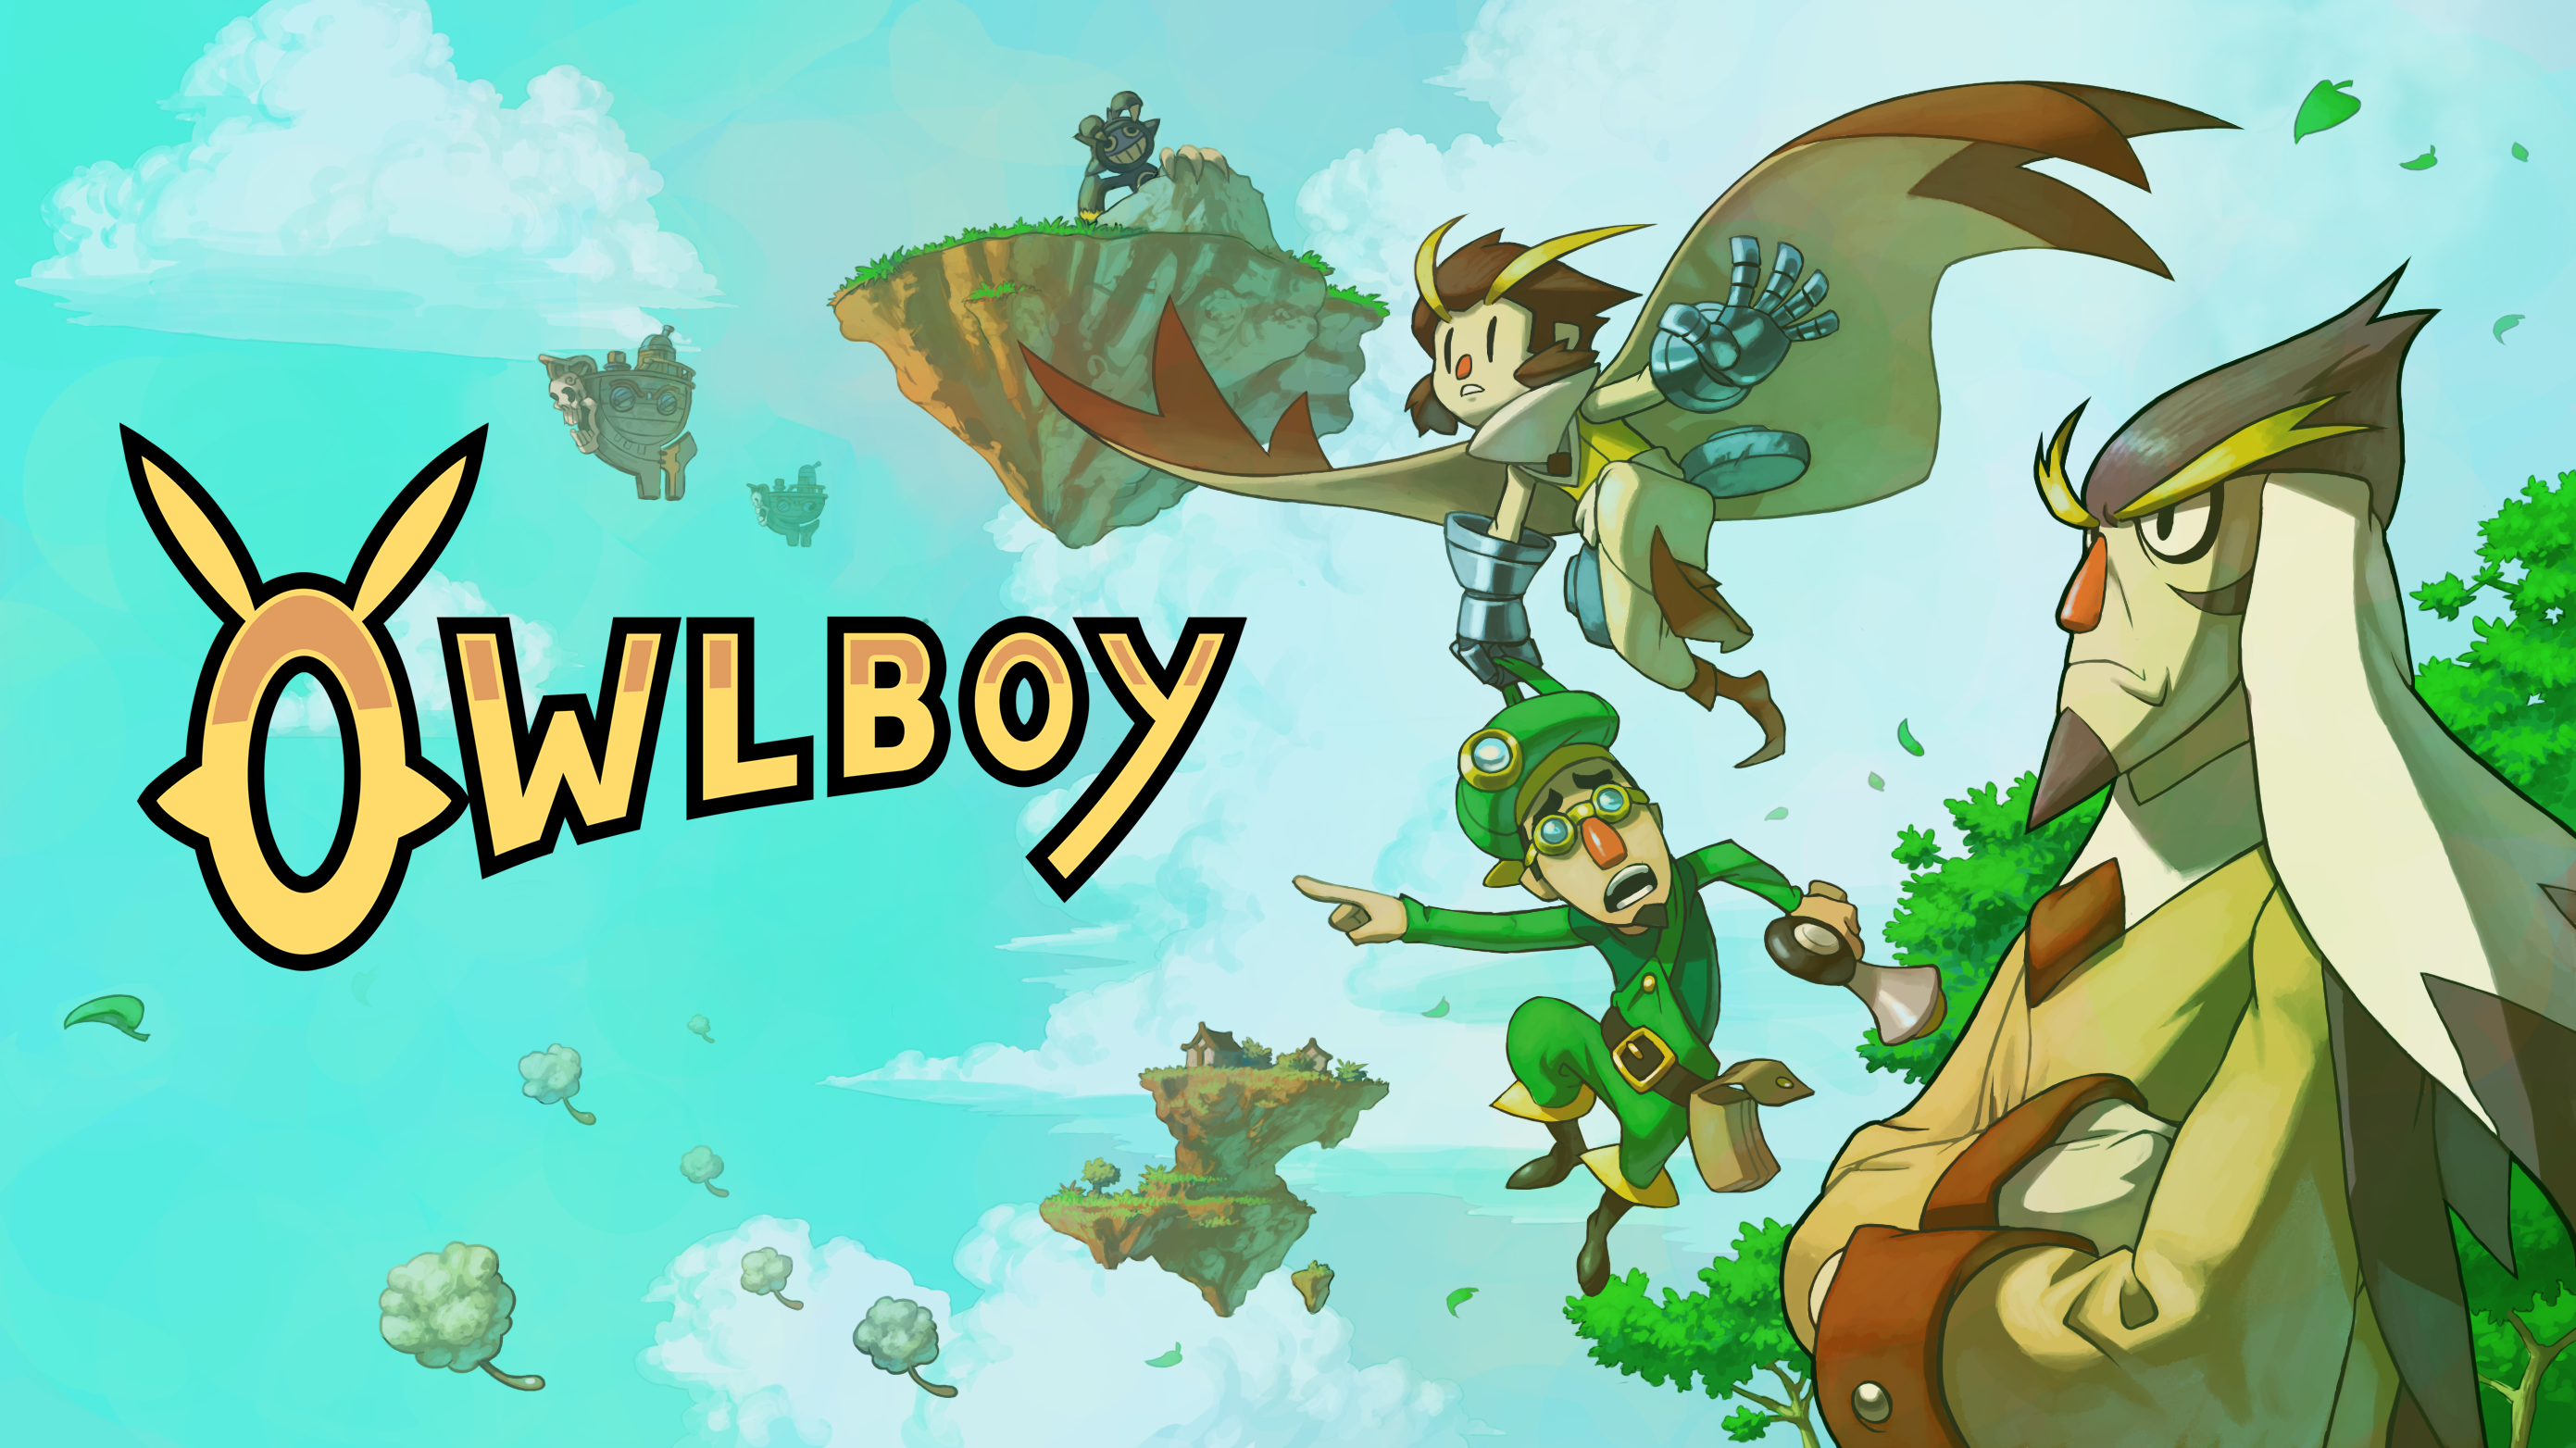 Critically acclaimed plaformer Owlboy to release on Nintendo Switch